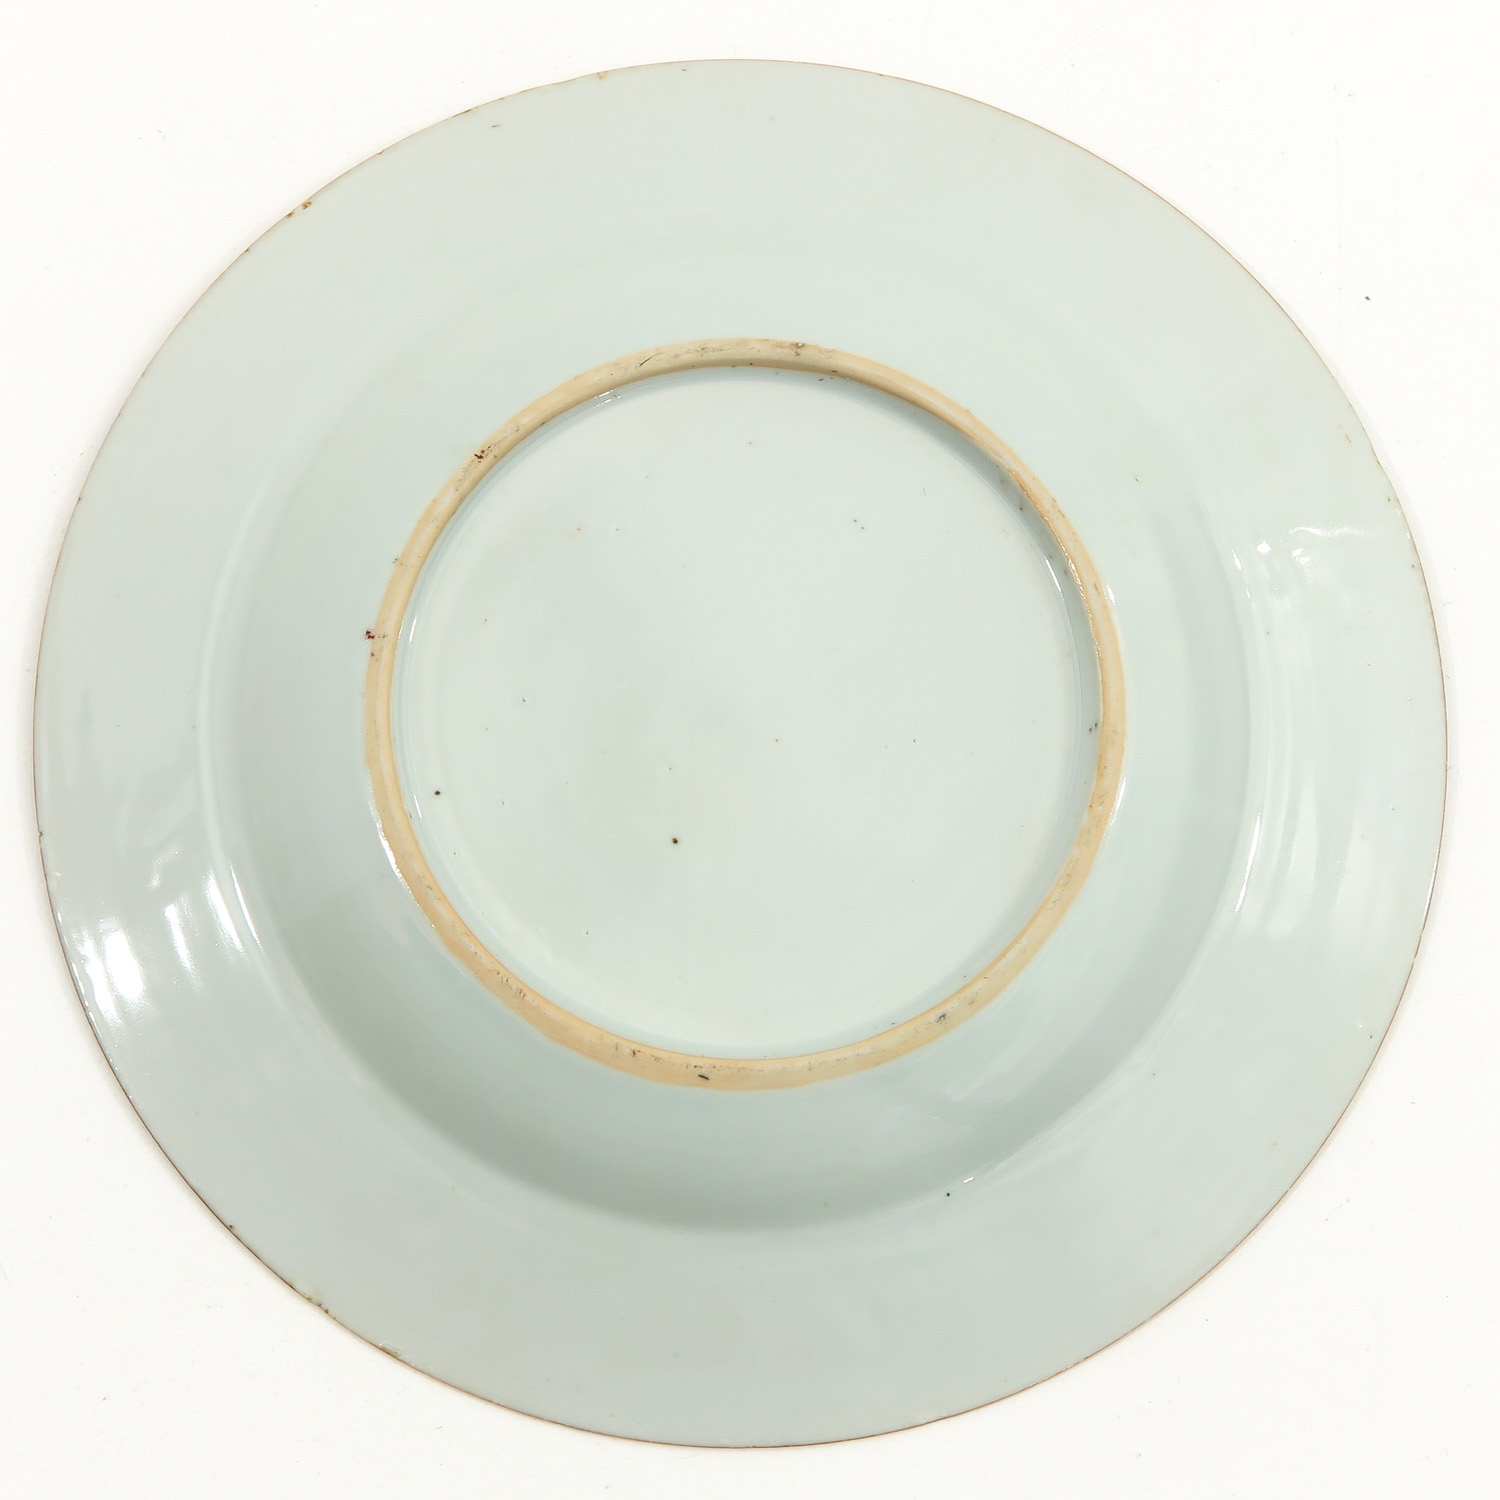 A Pair of Famille Rose Plates - Image 6 of 9